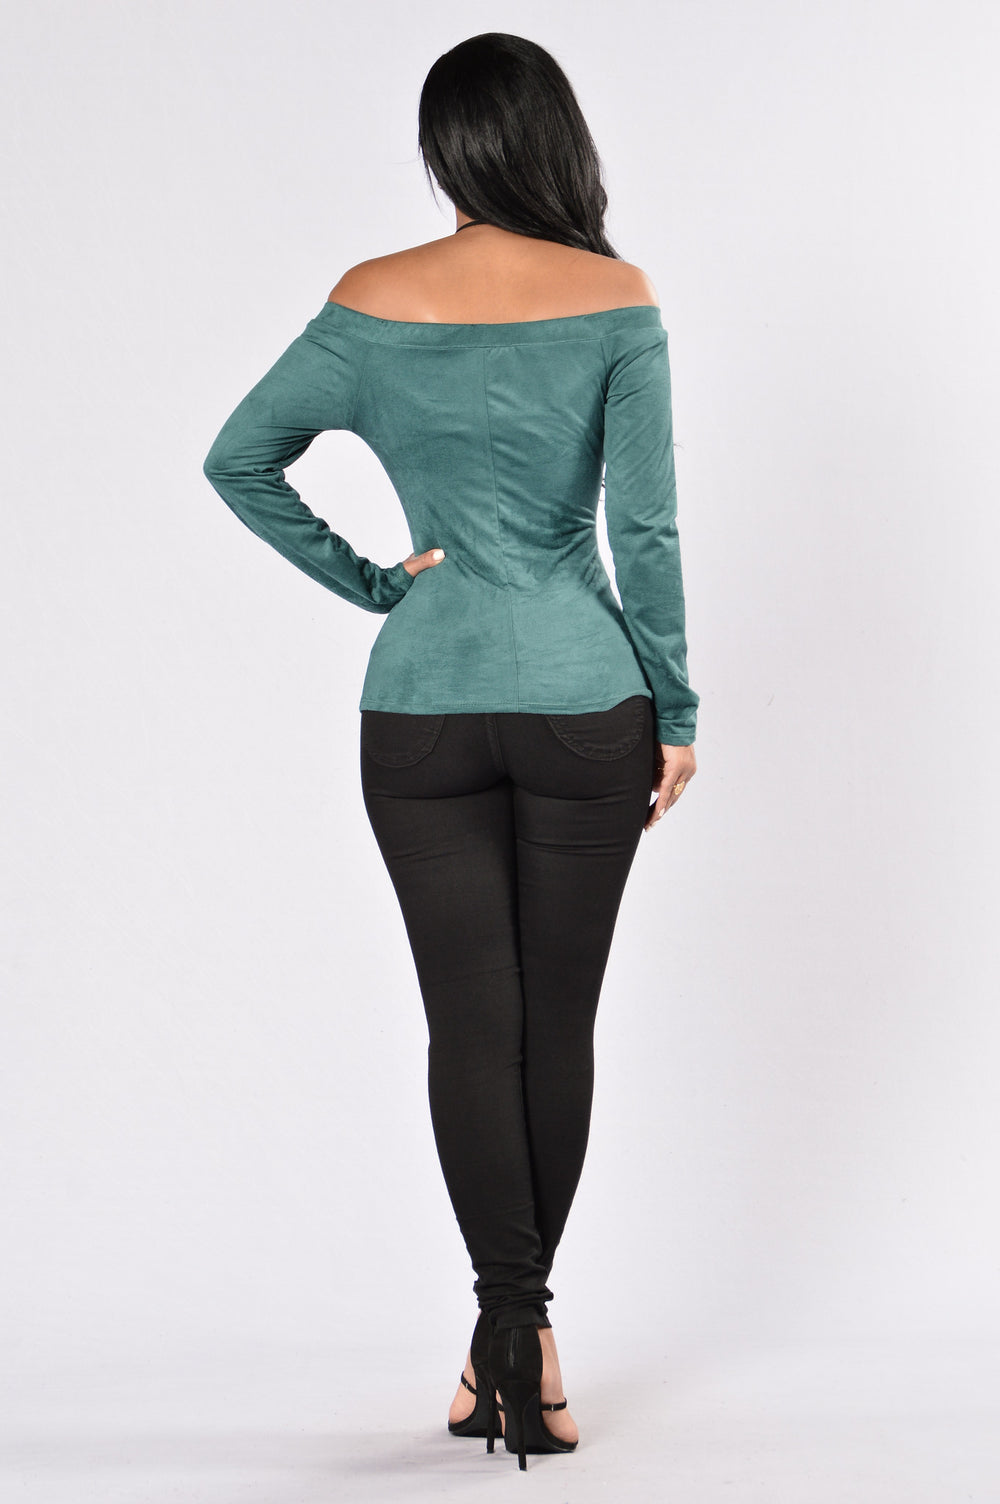 Feathered Top - Hunter Green